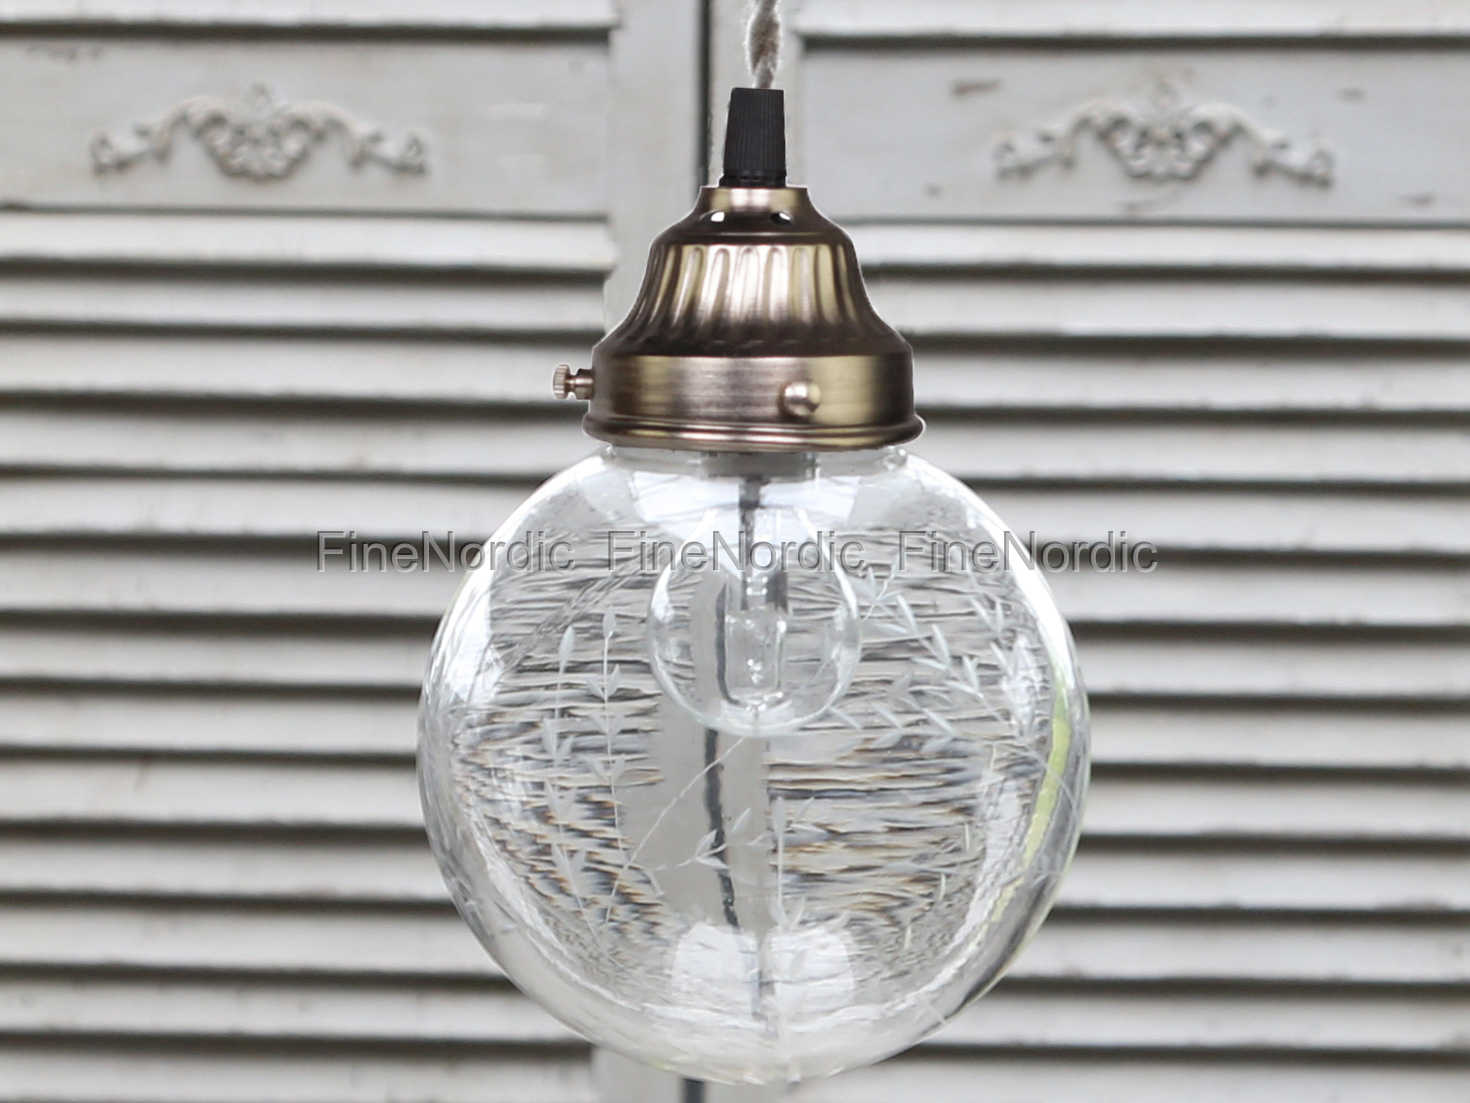 Chic Antique Ceiling Lamp Glass Ball Buy Online Here Product Code 70692 00